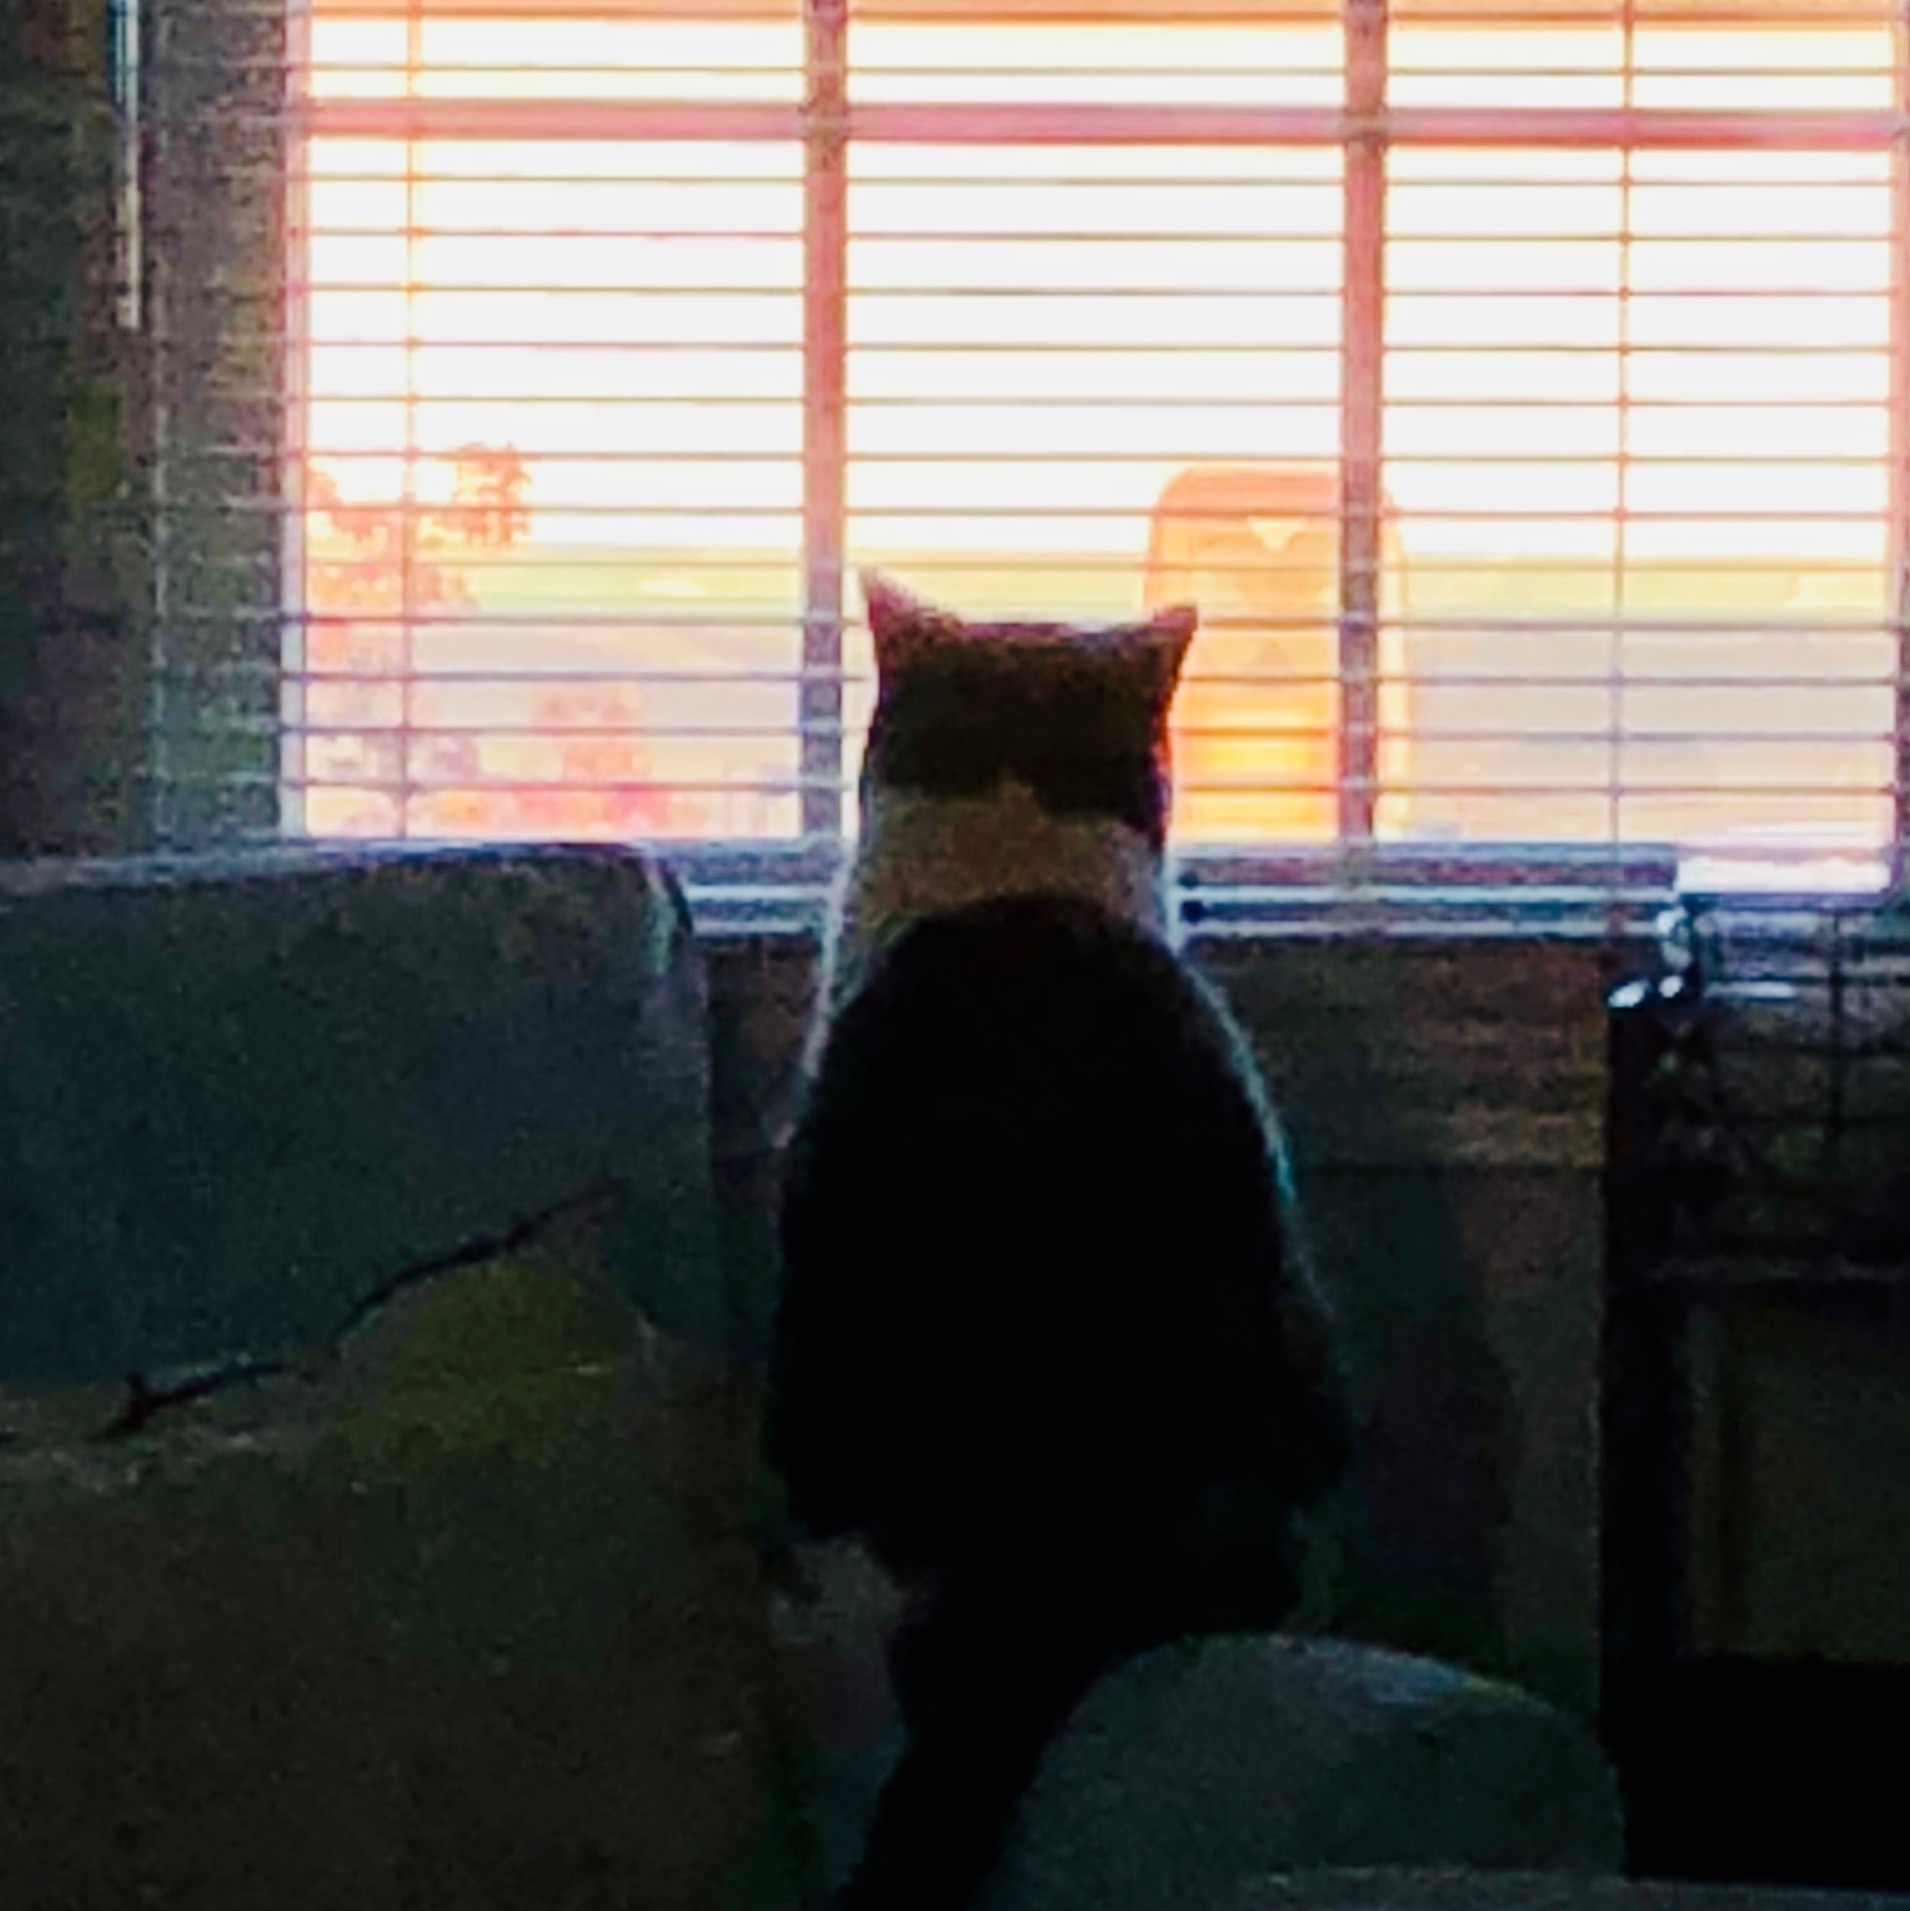 photo of my cat staring out window of sun rising over some                  buildings across the street.